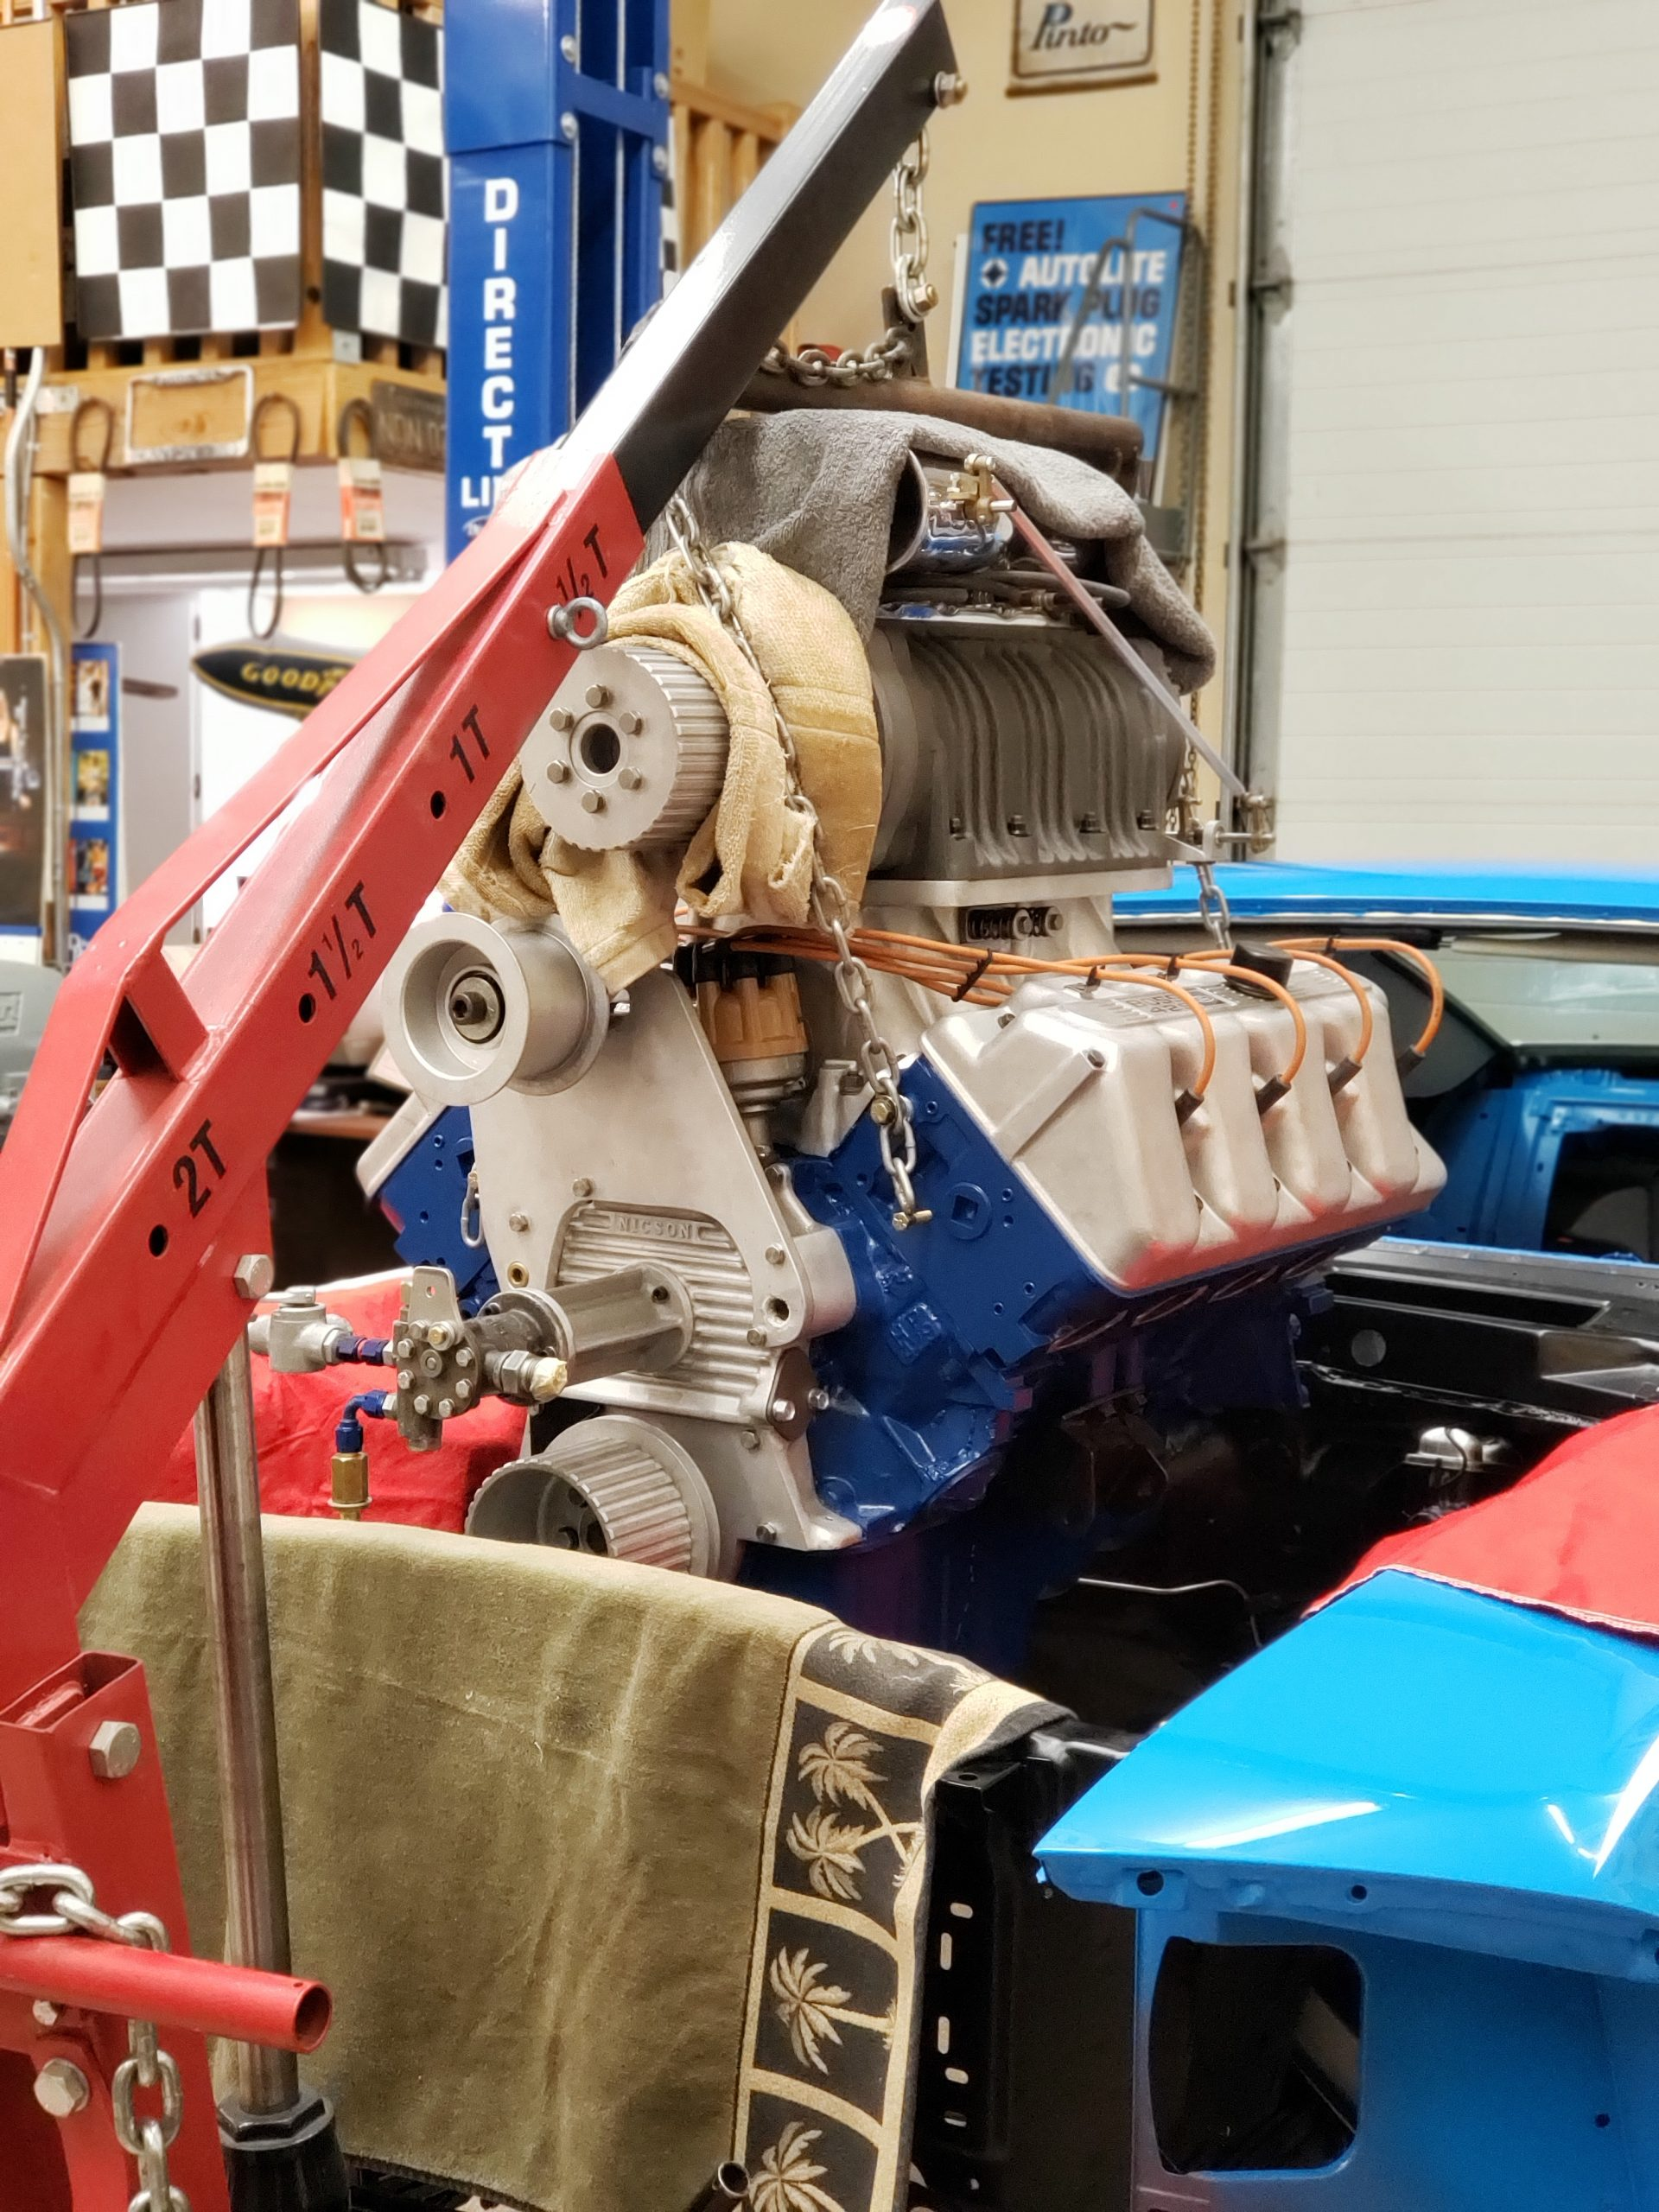 Lawman Boss 429 Ford Mustang engine on lift